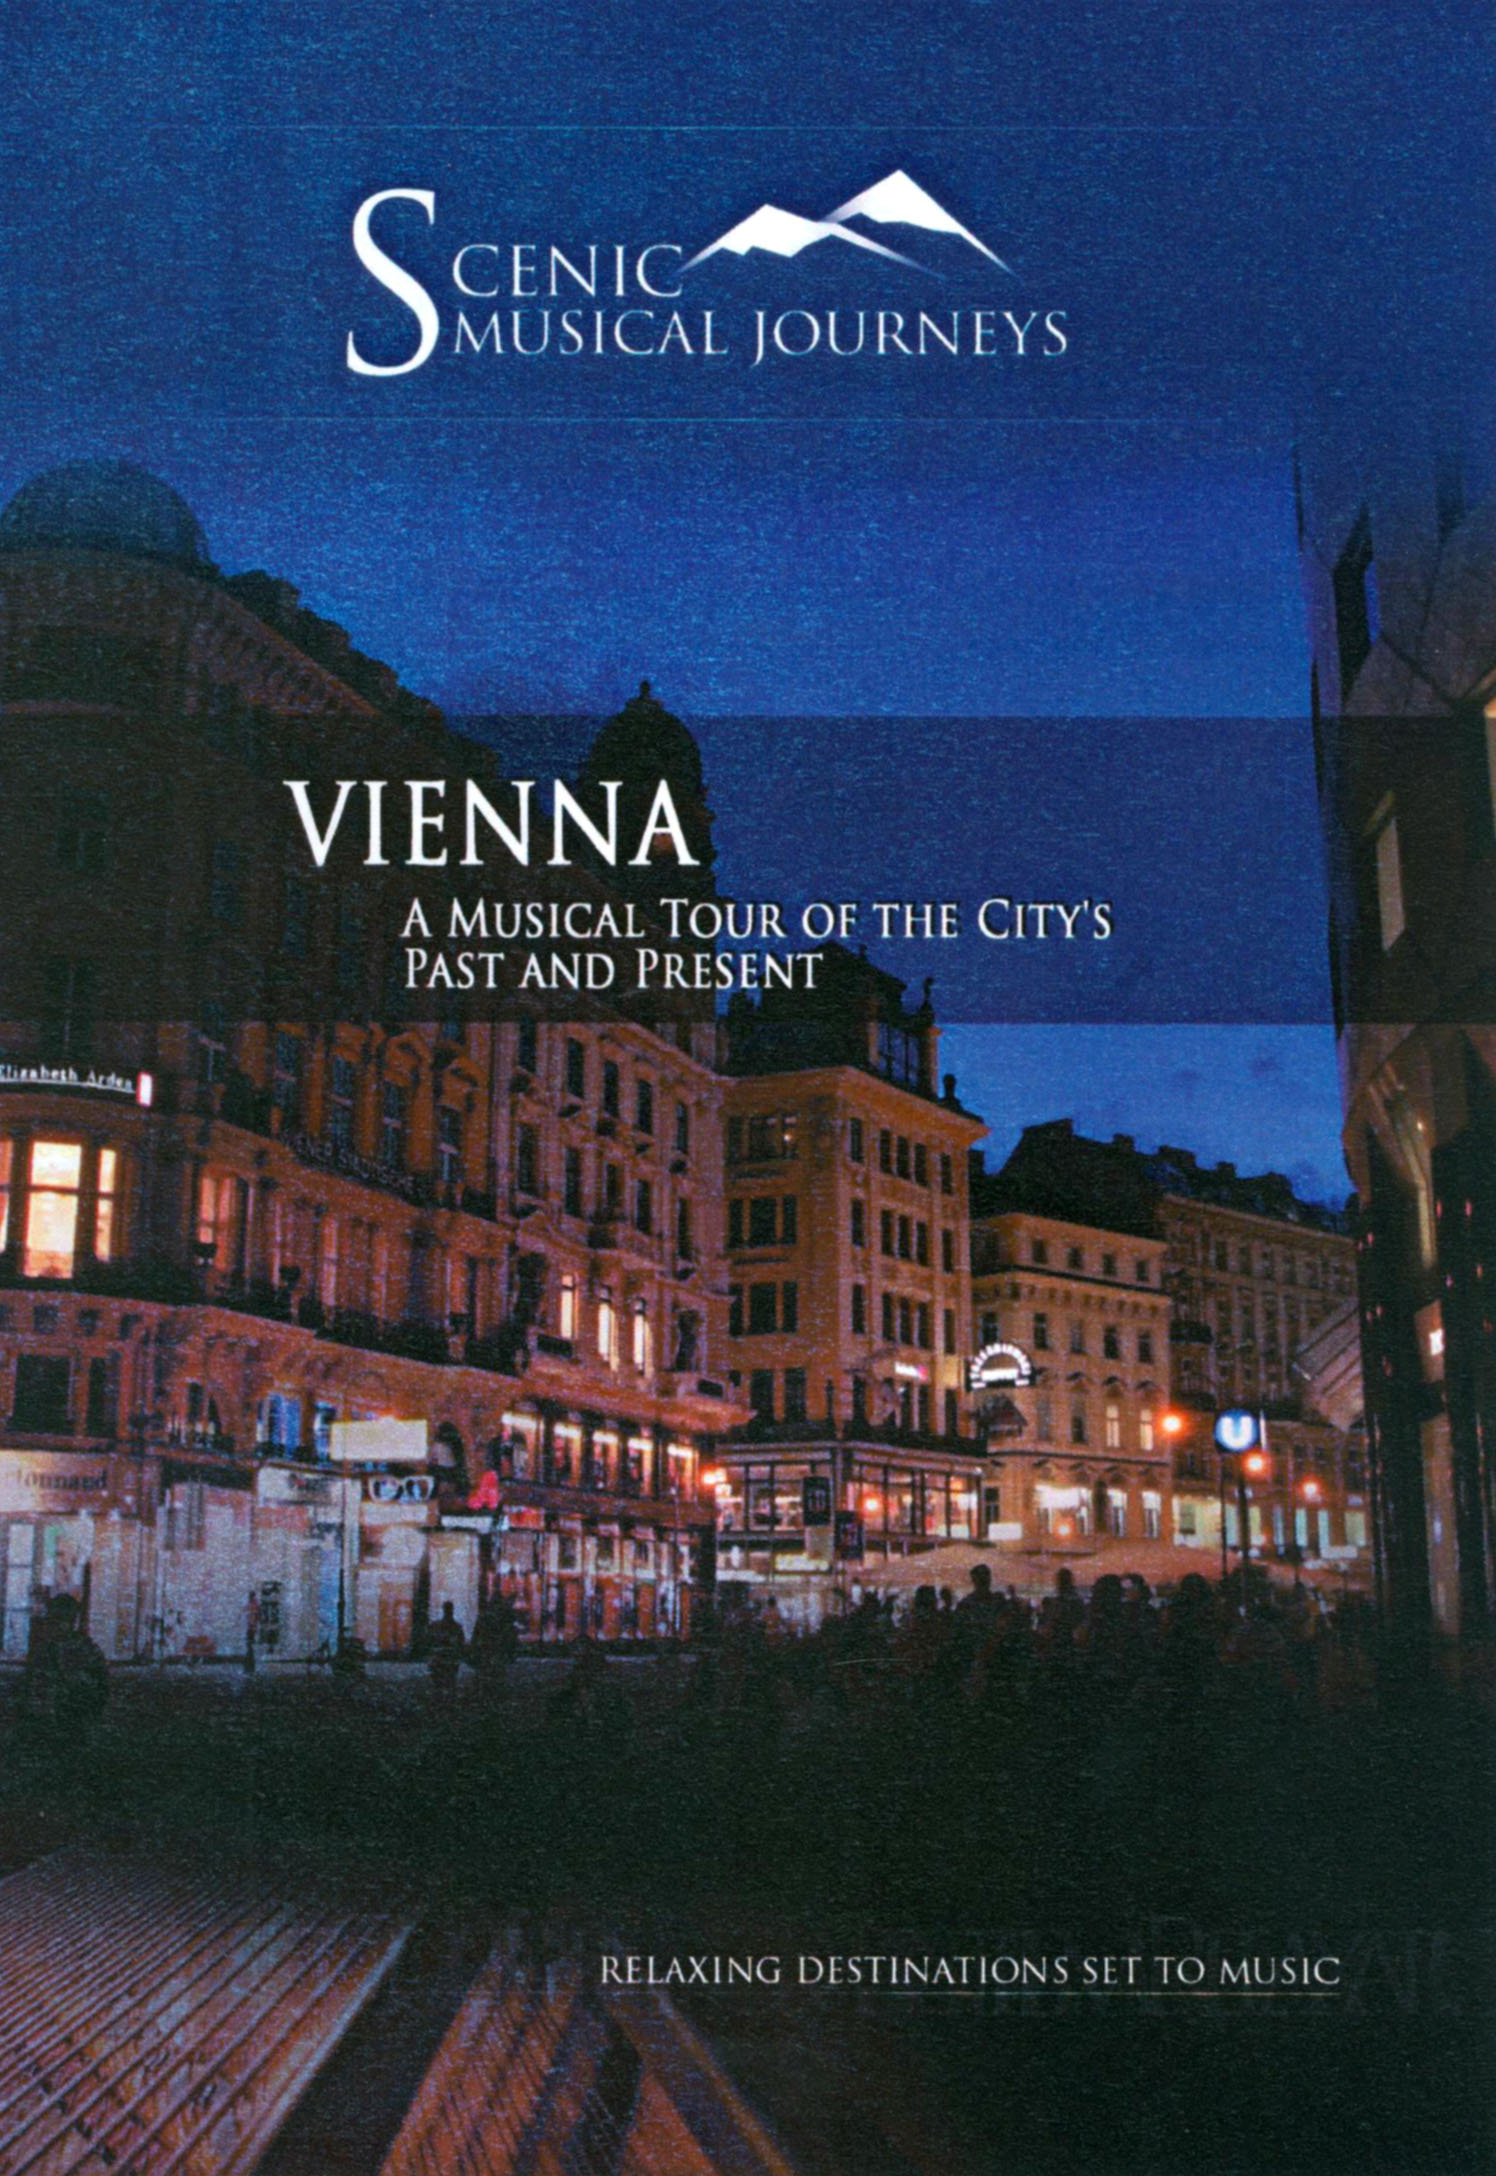 Scenic Musical Journeys: Vienna - A Musical Tour of The City's Past and Present